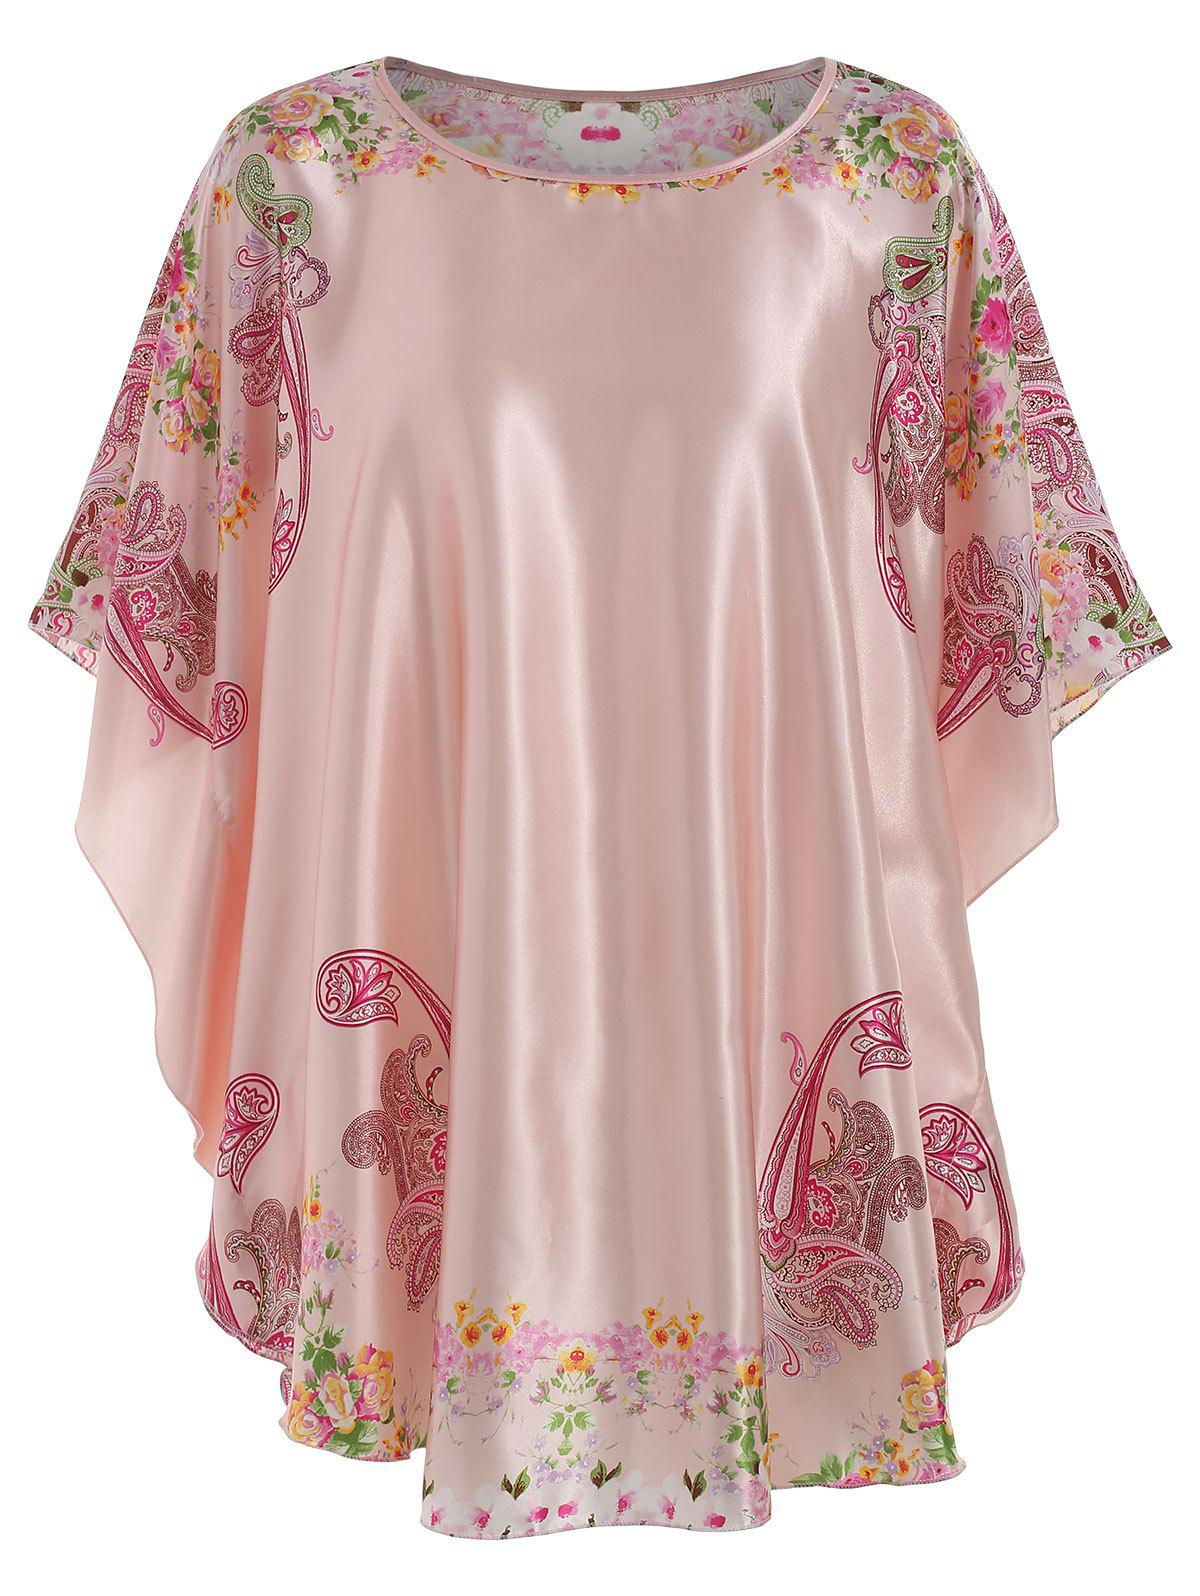 Satin Floral Print Nightdress - PINK ONE SIZE